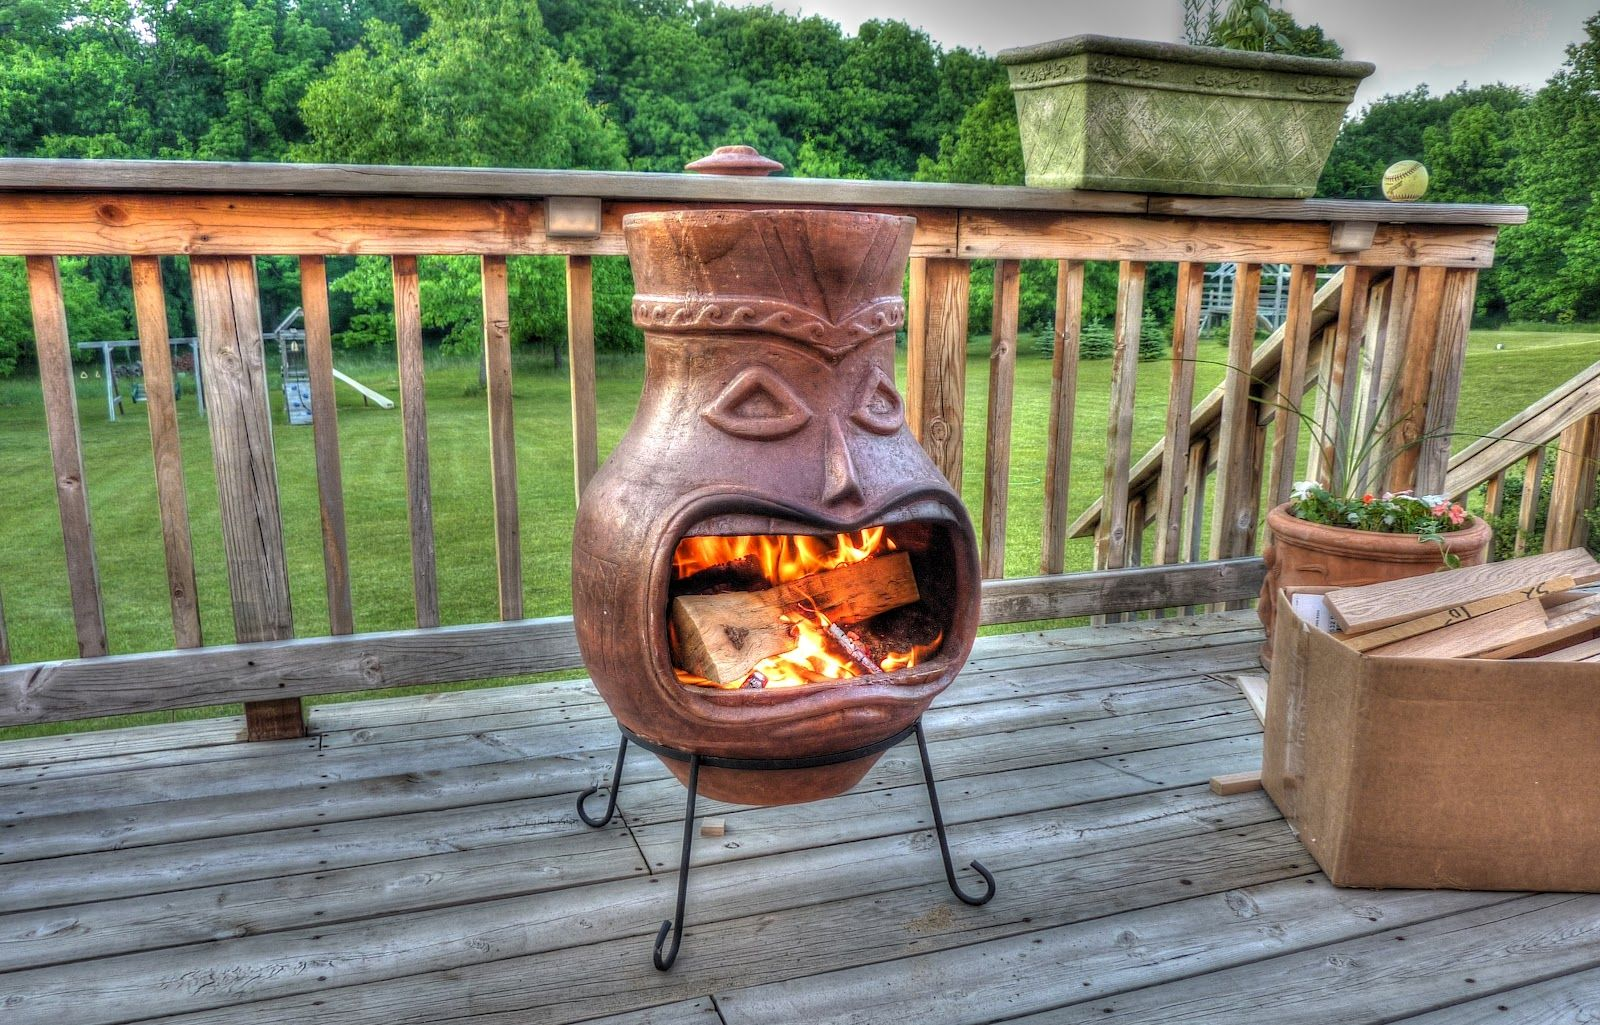 Exterior Design Unique Chiminea Fireplace With Home In In 2020 Outdoor Decor Outdoor Fire Pit Chiminea Fire Pit